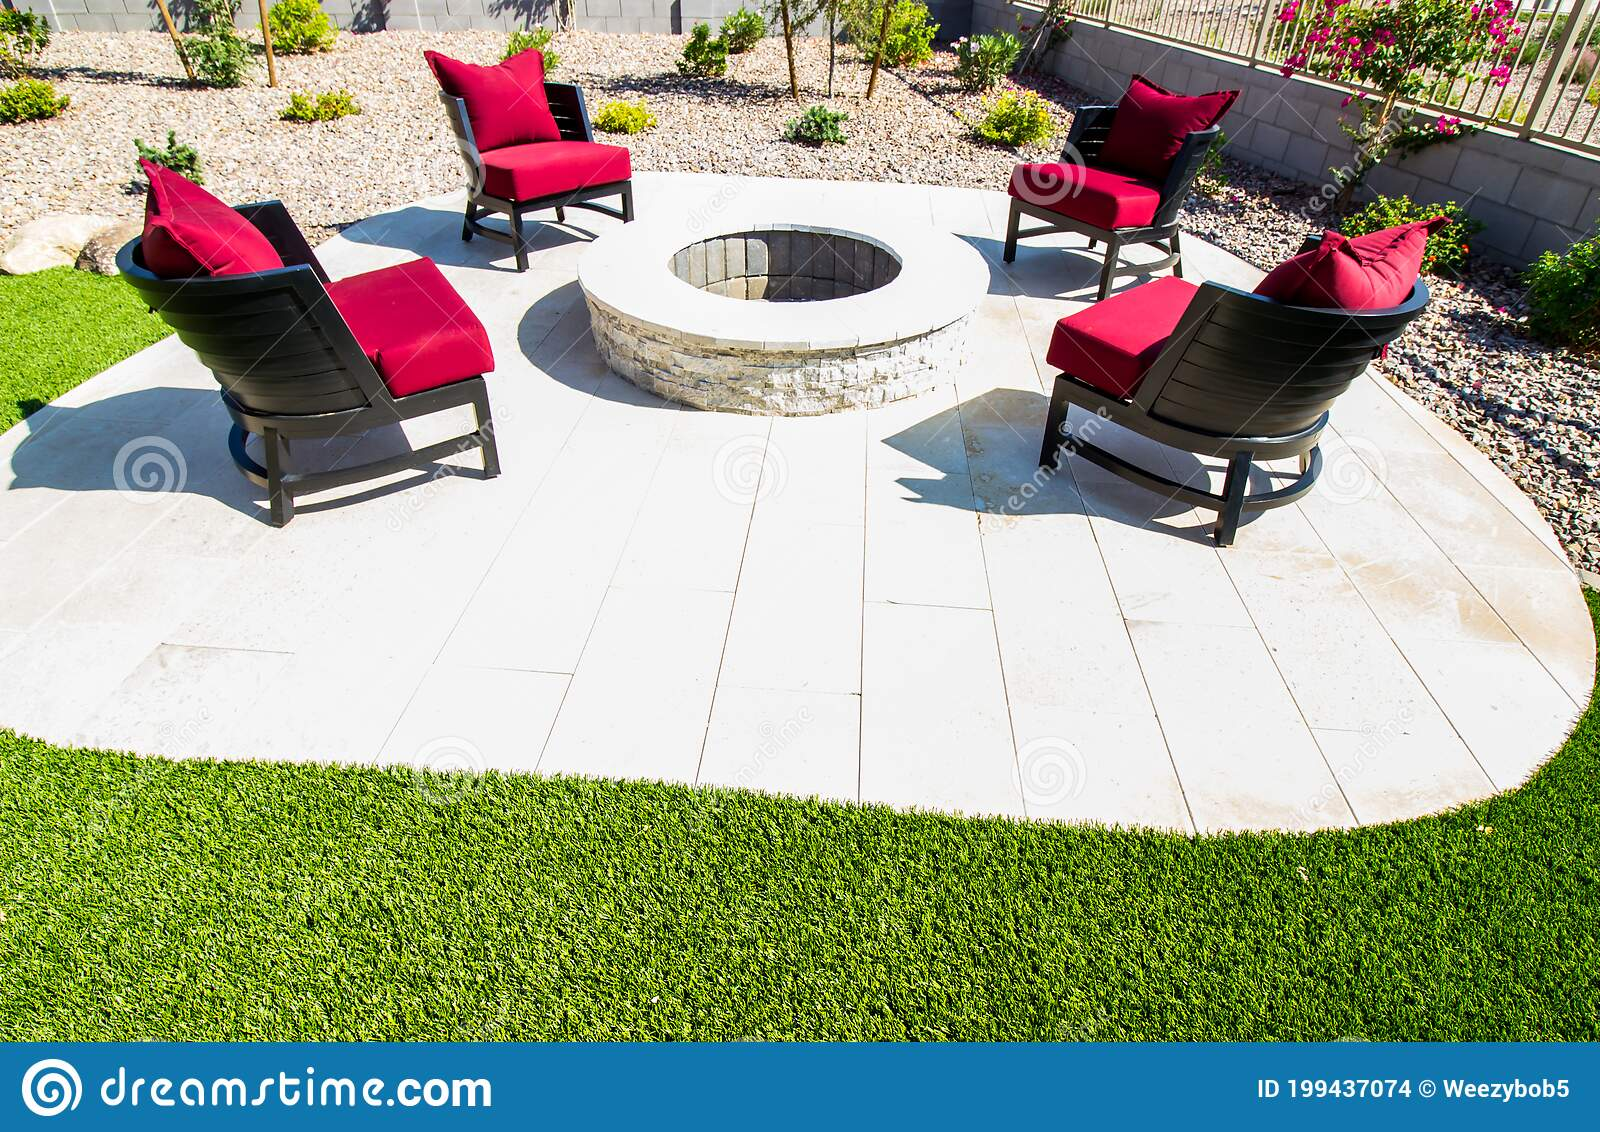 Four Patio Chairs With Cushions Surrounding Rear Patio Round Fire Pit Stock Photo Image Of Flowers Circular 199437074